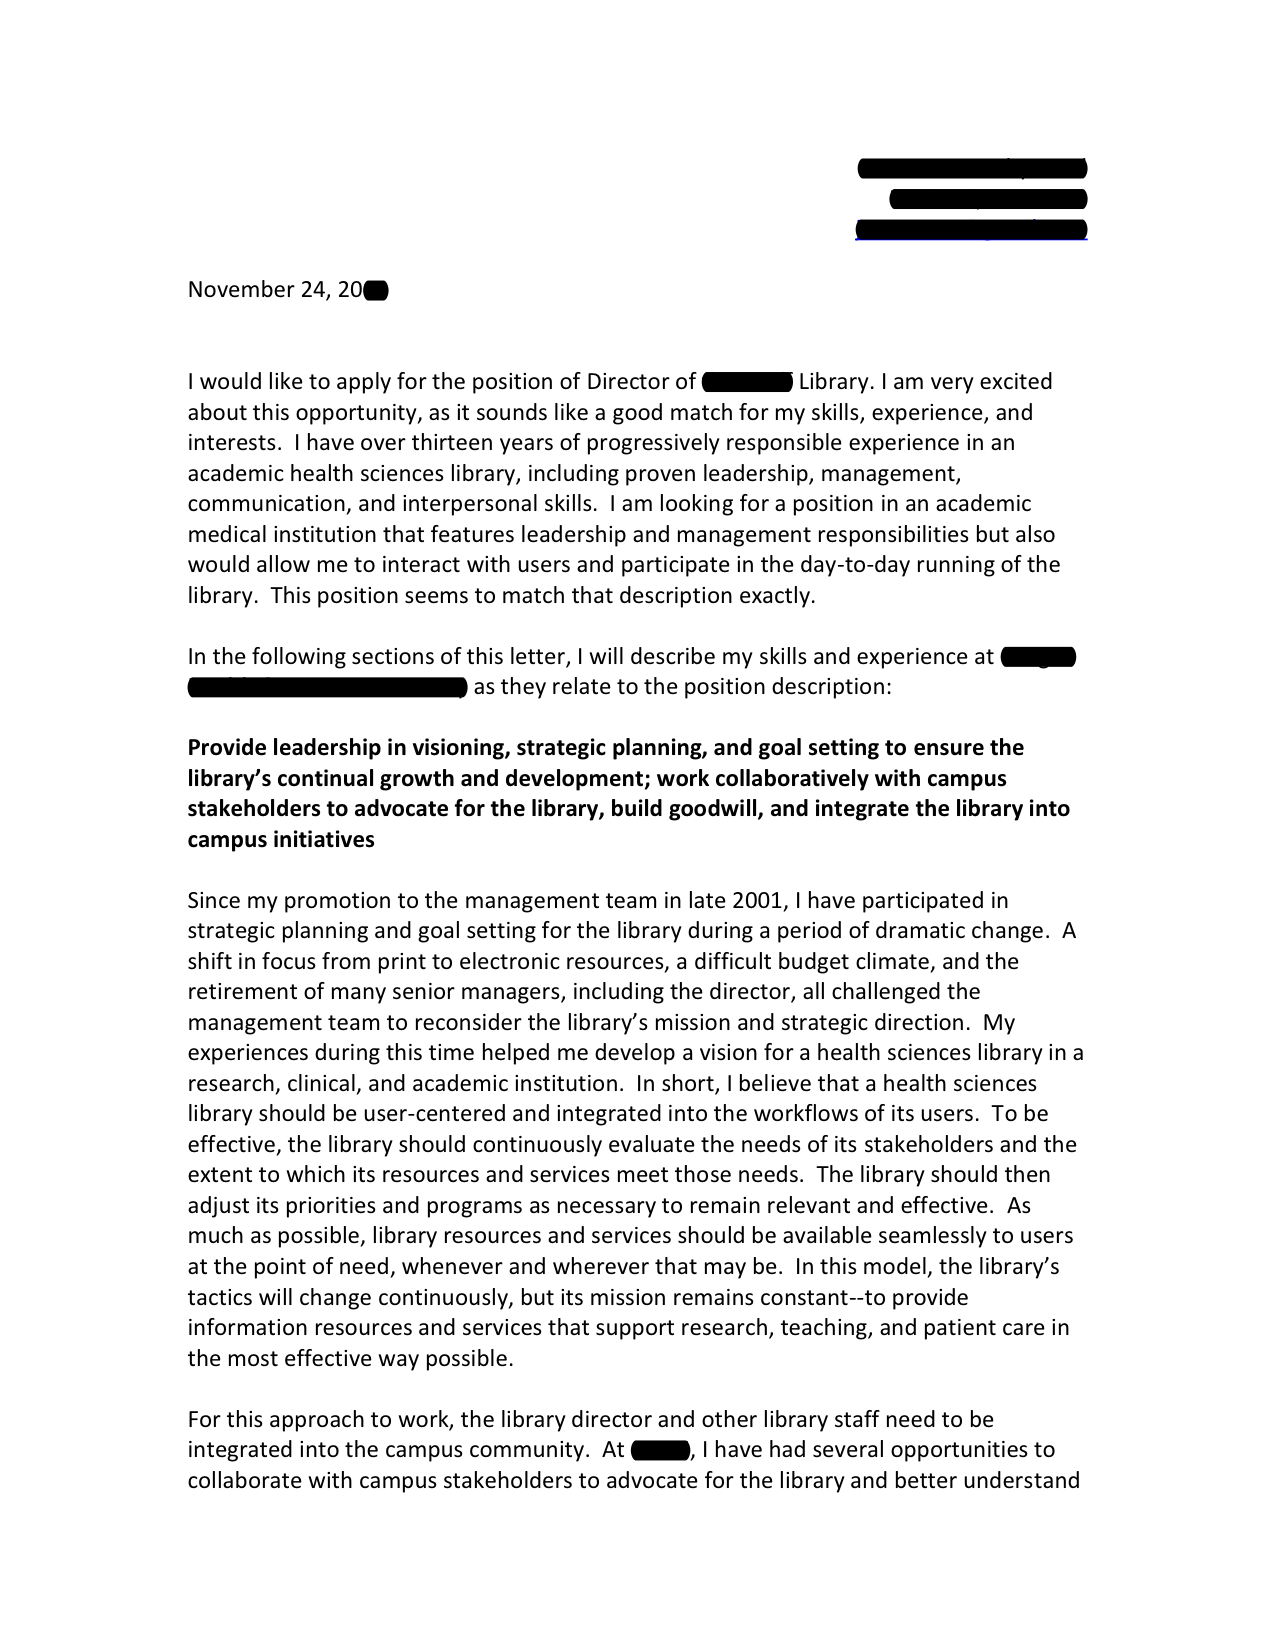 Best Cover Letter Reddit Under Fontanacountryinn Com